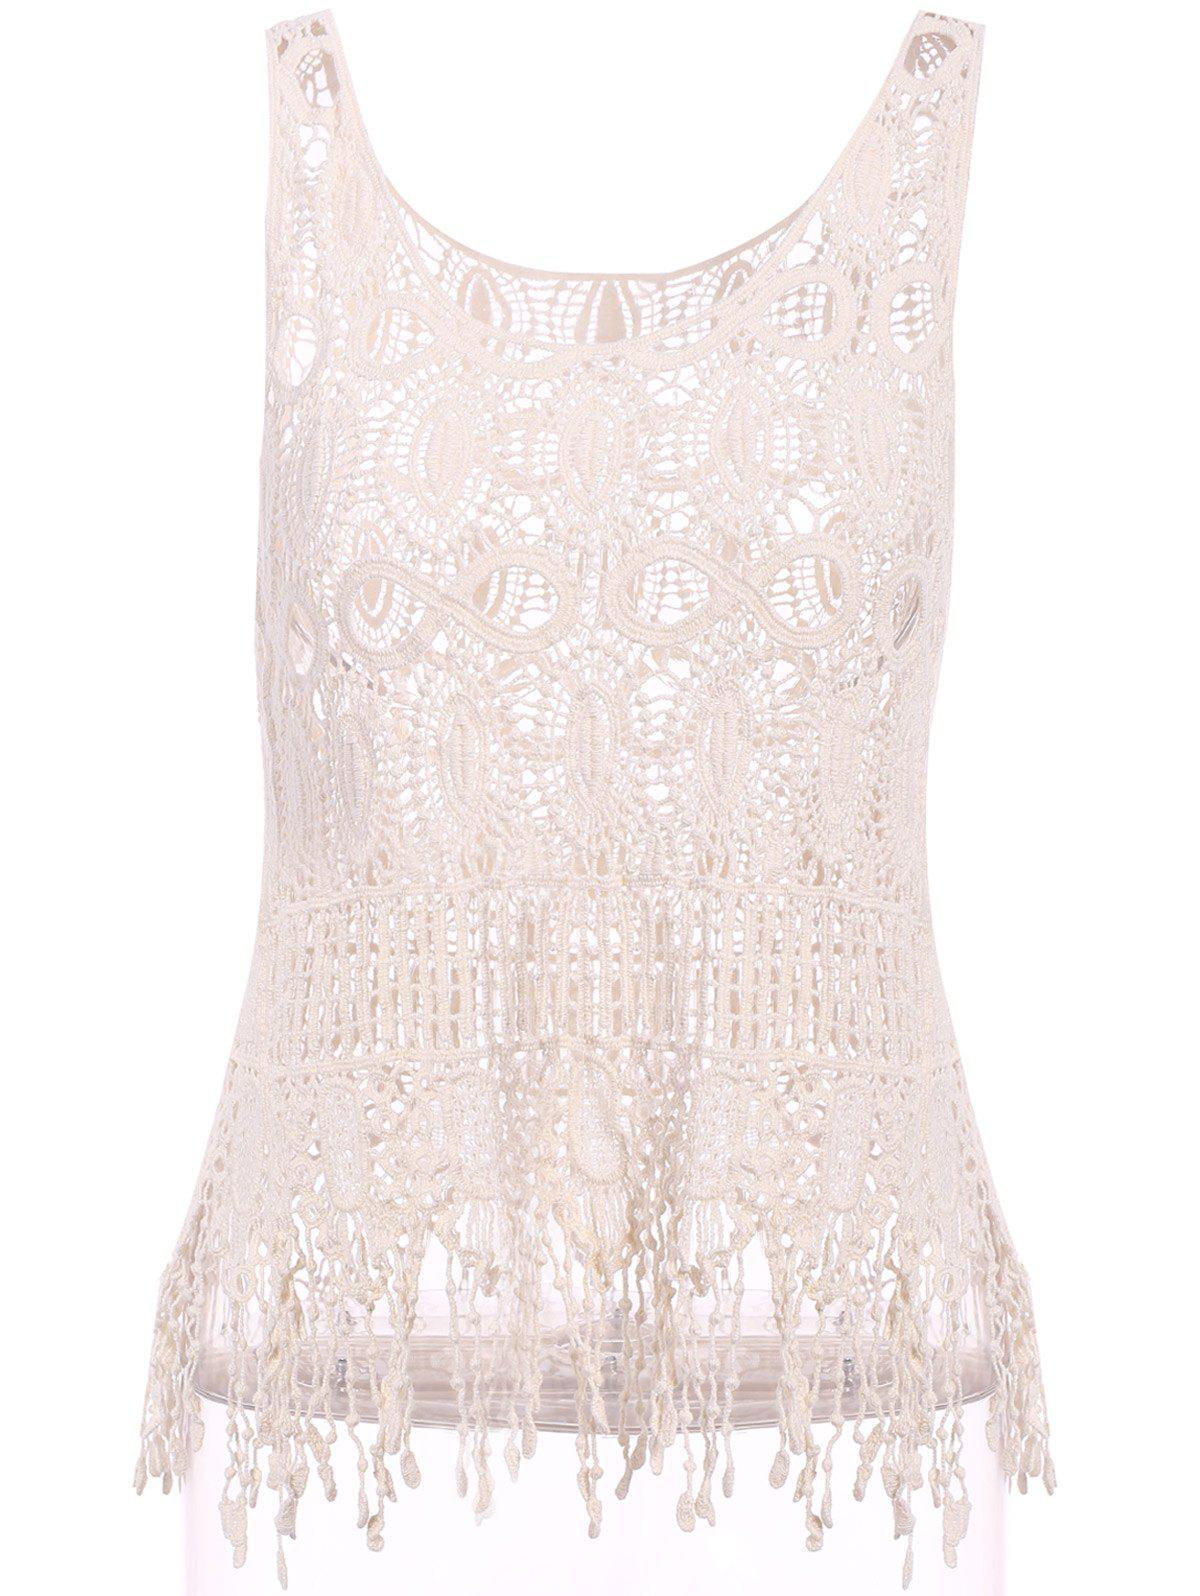 Chic Scoop Neck Sleeveless Crochet Pure Color Womens Tank TopWomen<br><br><br>Size: ONE SIZE(FIT SIZE XS TO M)<br>Color: BEIGE